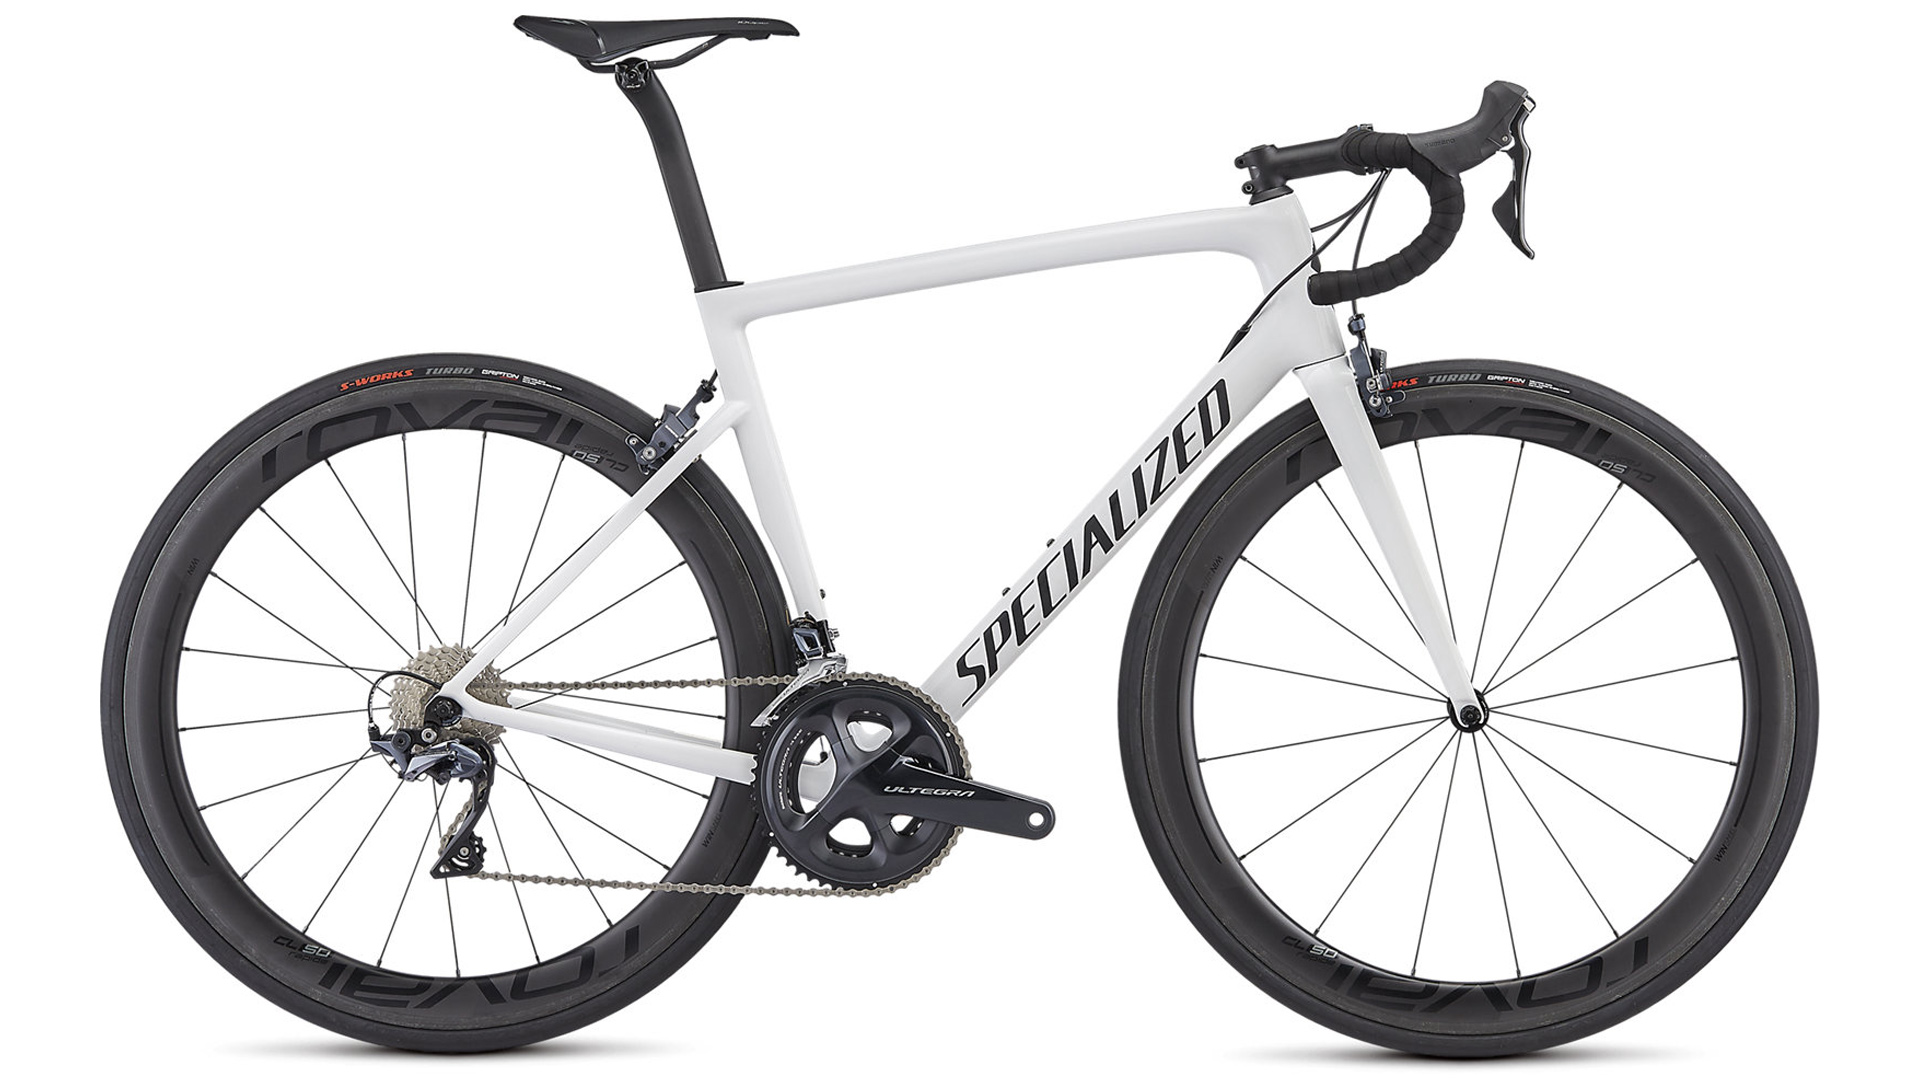 Campana Radsport – Specialized Tarmac